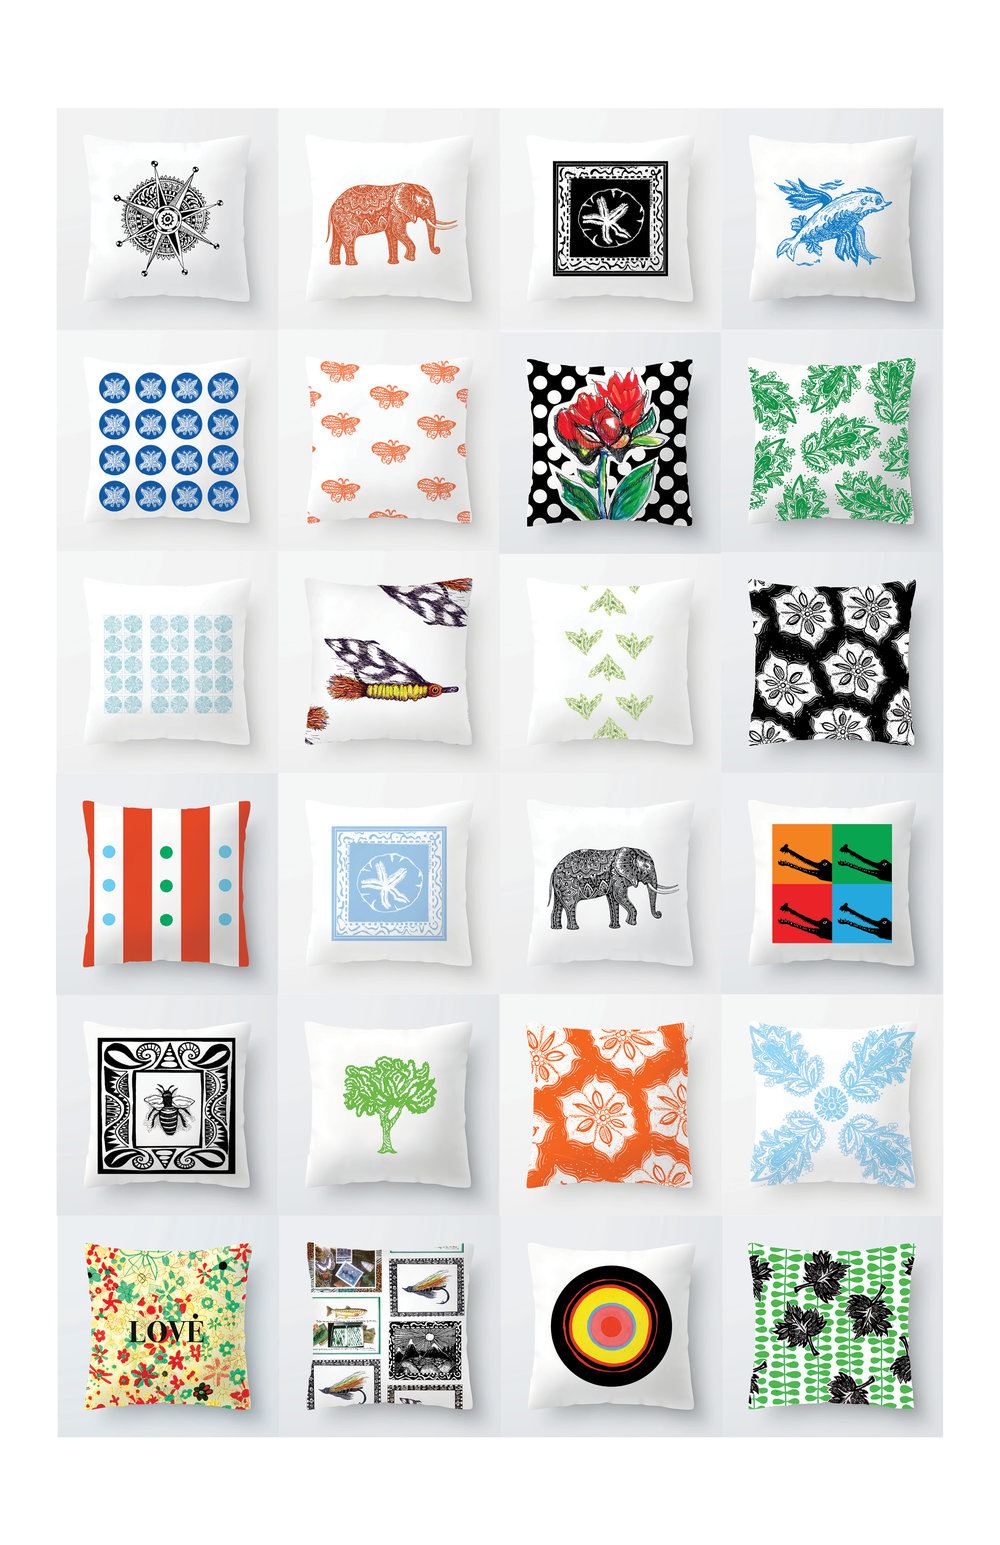 ME+Design+Square+pillows+20up+12-29-172.jpg